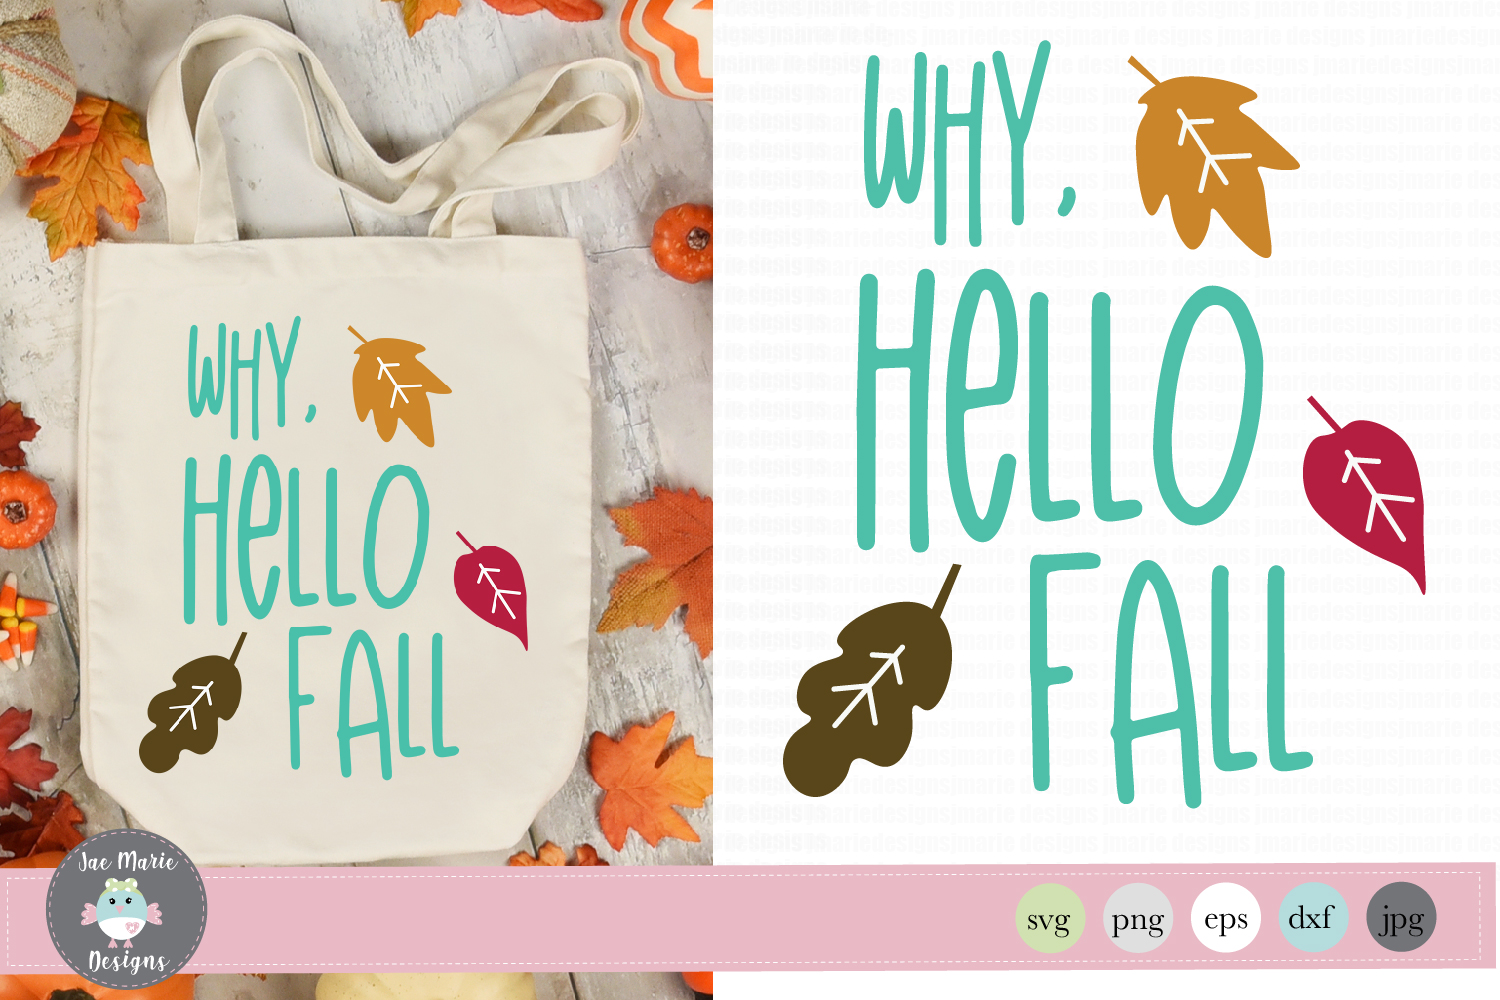 Download Free Why Hello Fall Graphic By Thejaemarie Creative Fabrica for Cricut Explore, Silhouette and other cutting machines.